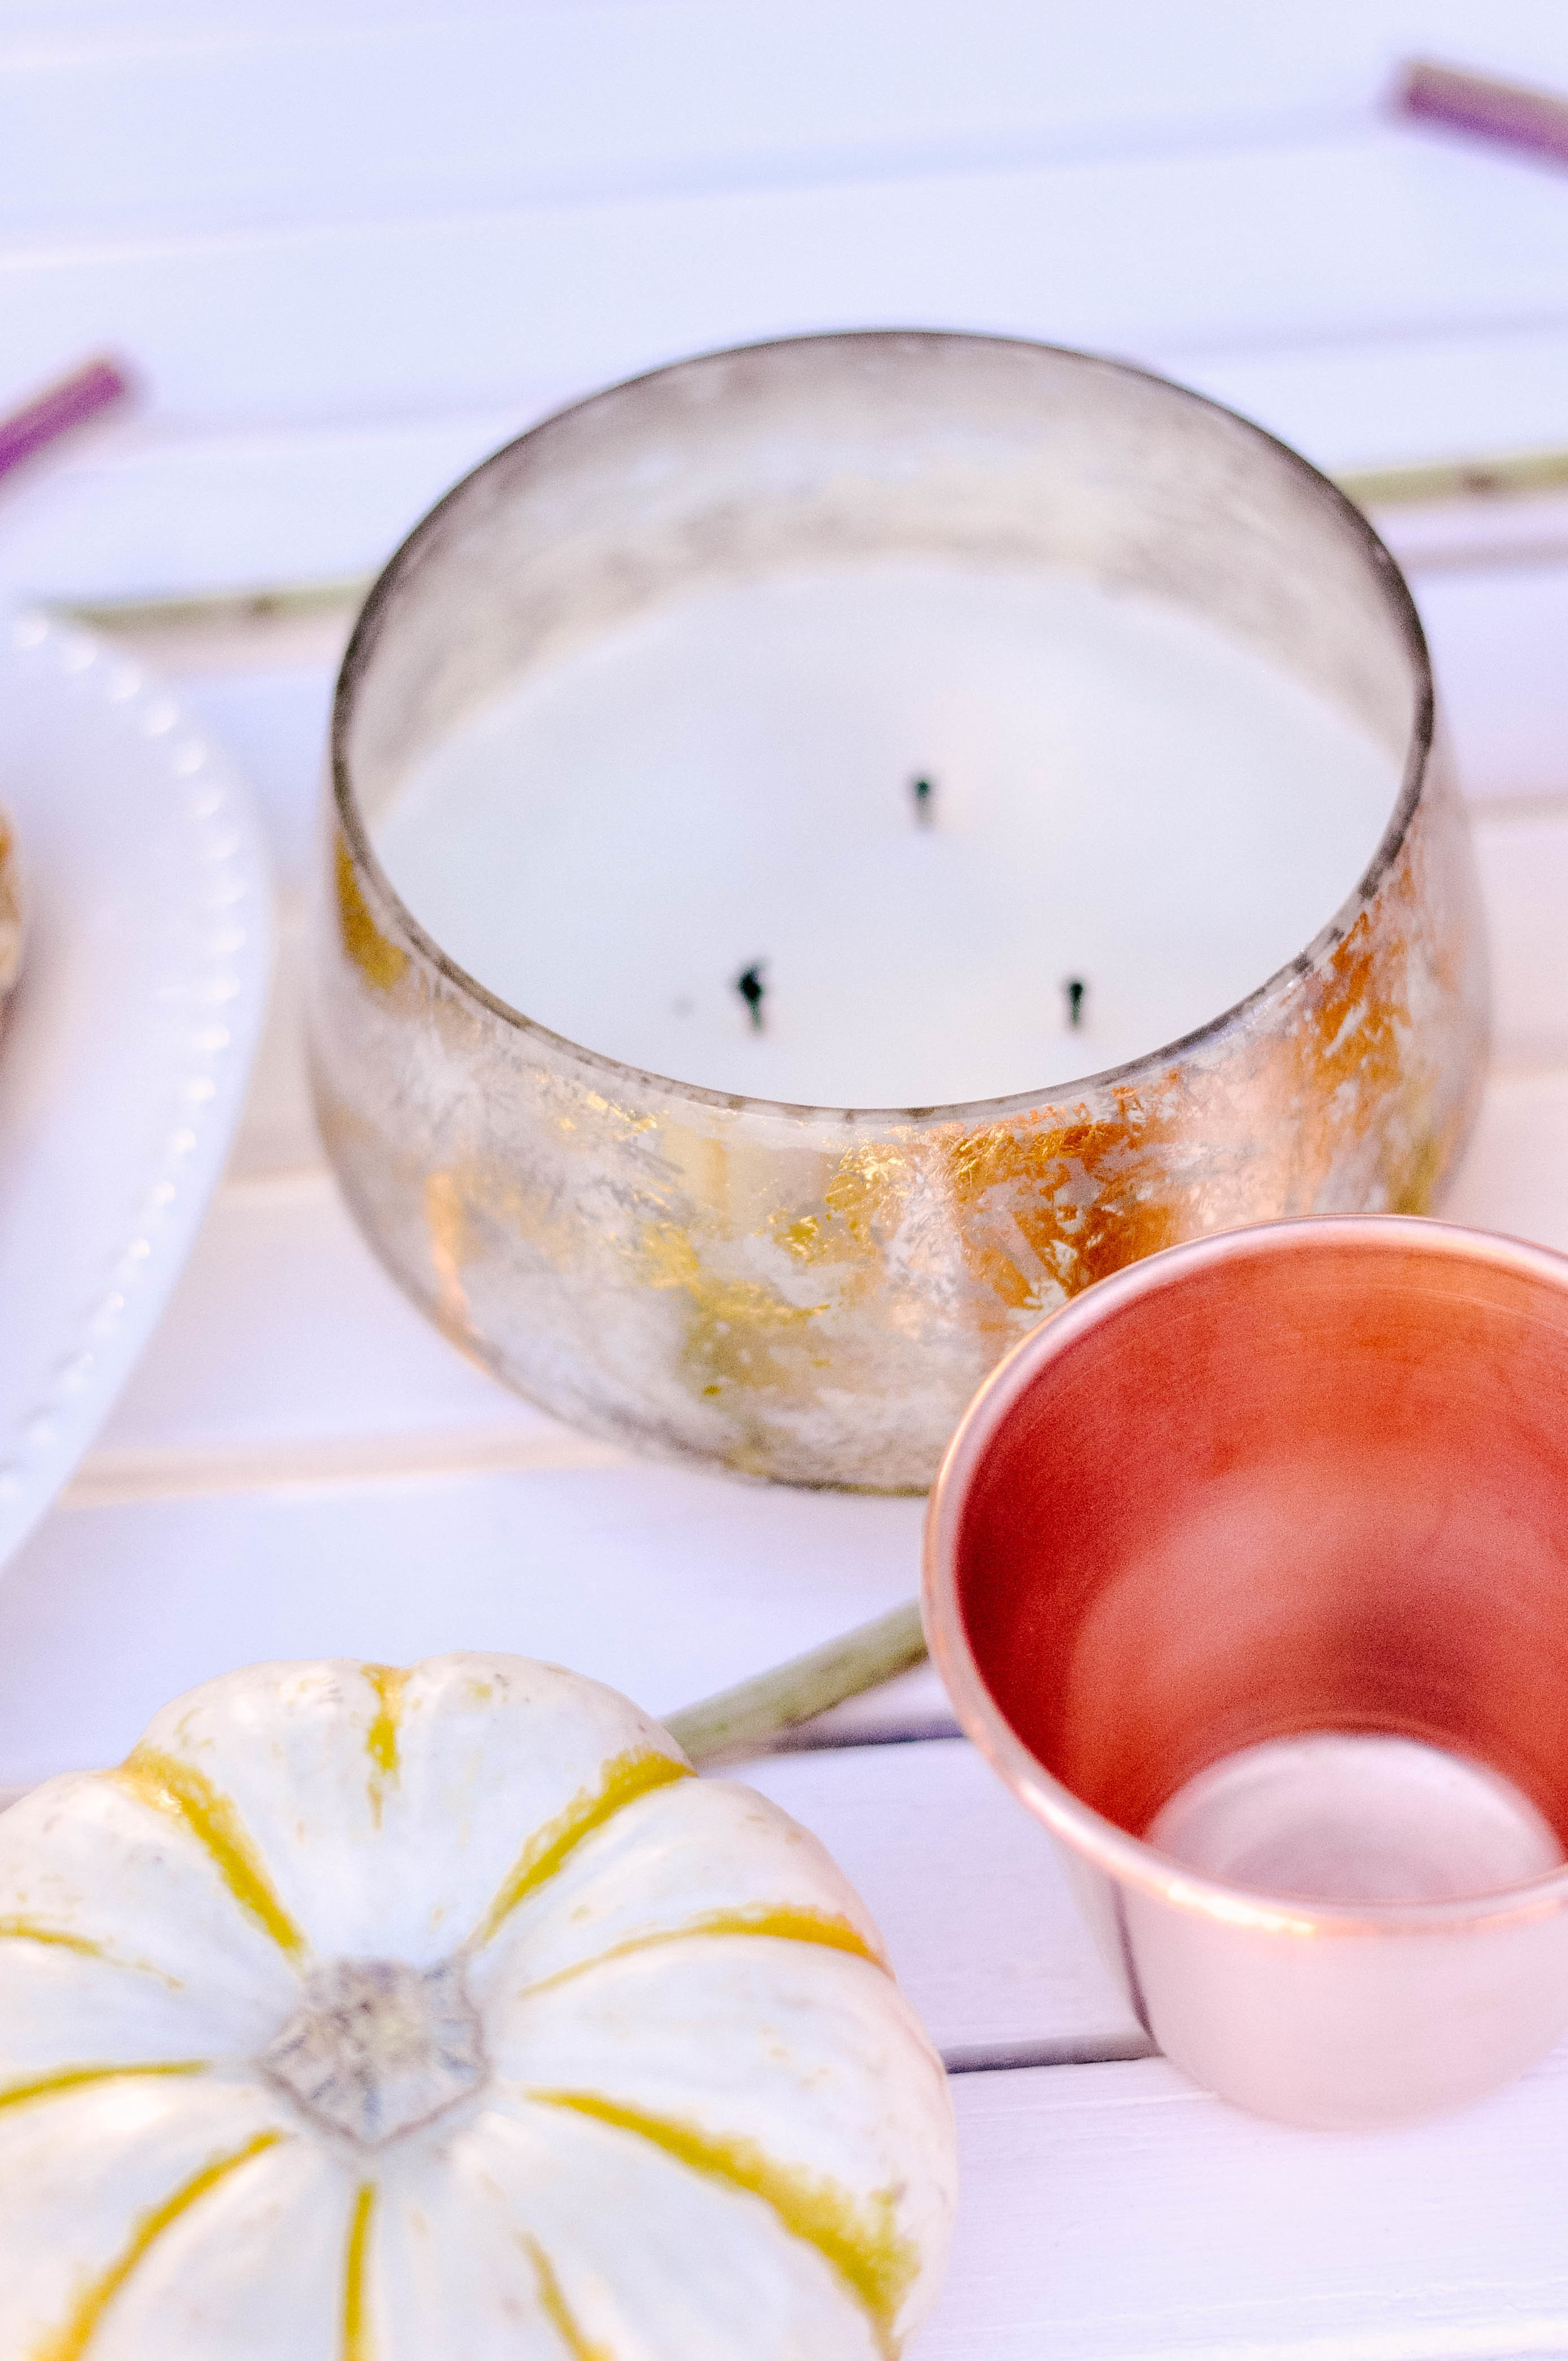 Vanilla and Cinnamon Anthropologie Candle